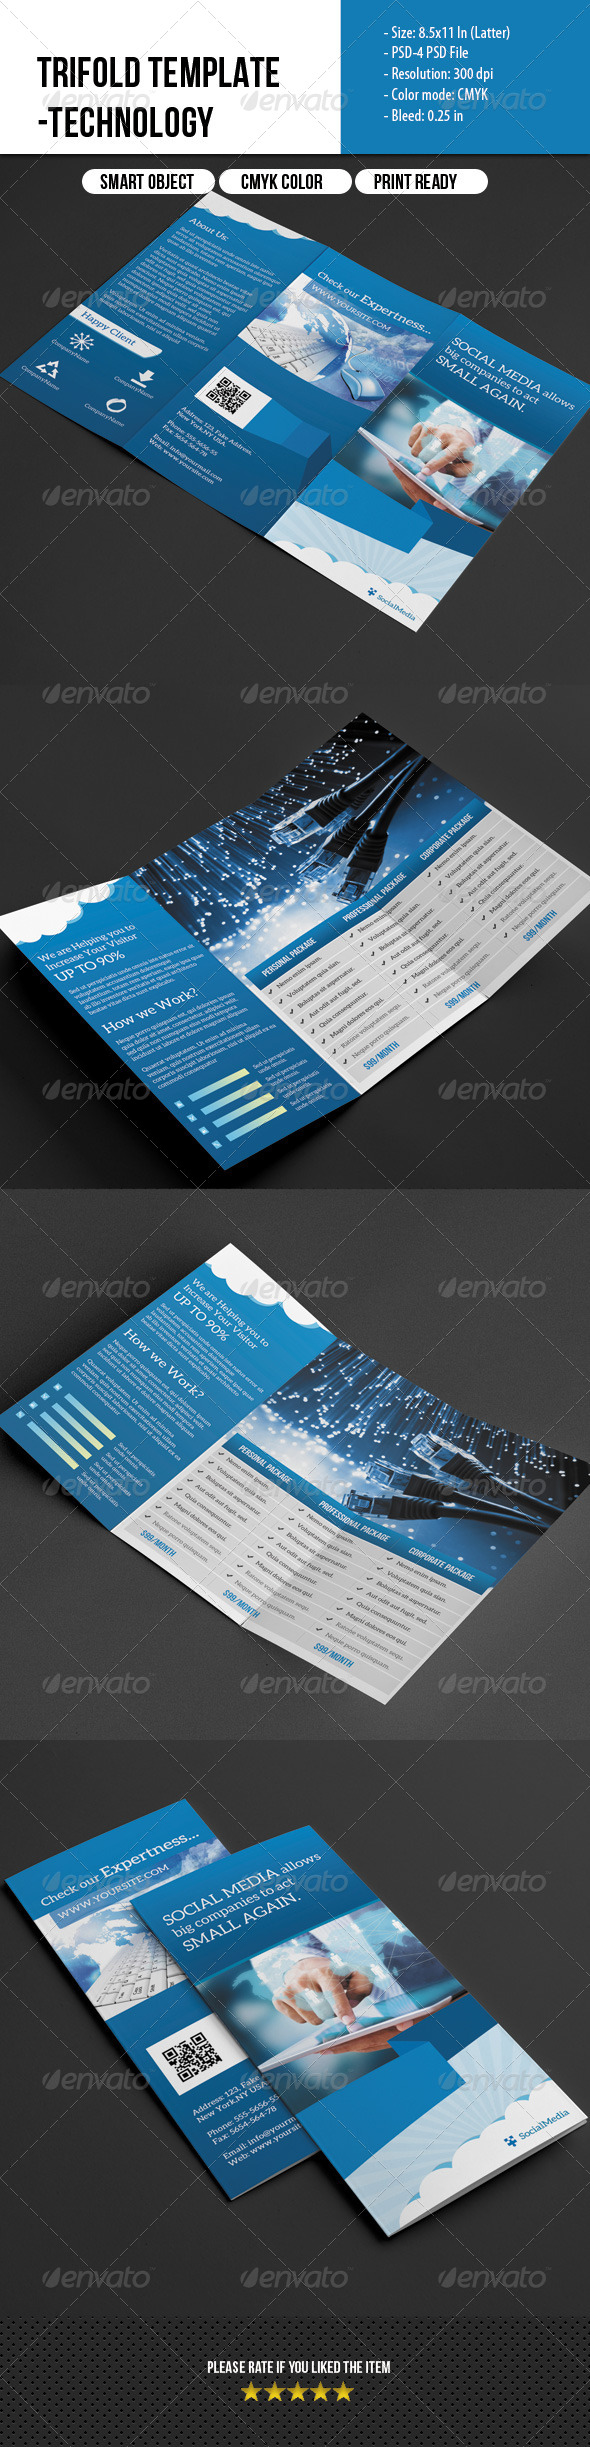 Trifold Template- Social Media Marketing  - Corporate Brochures